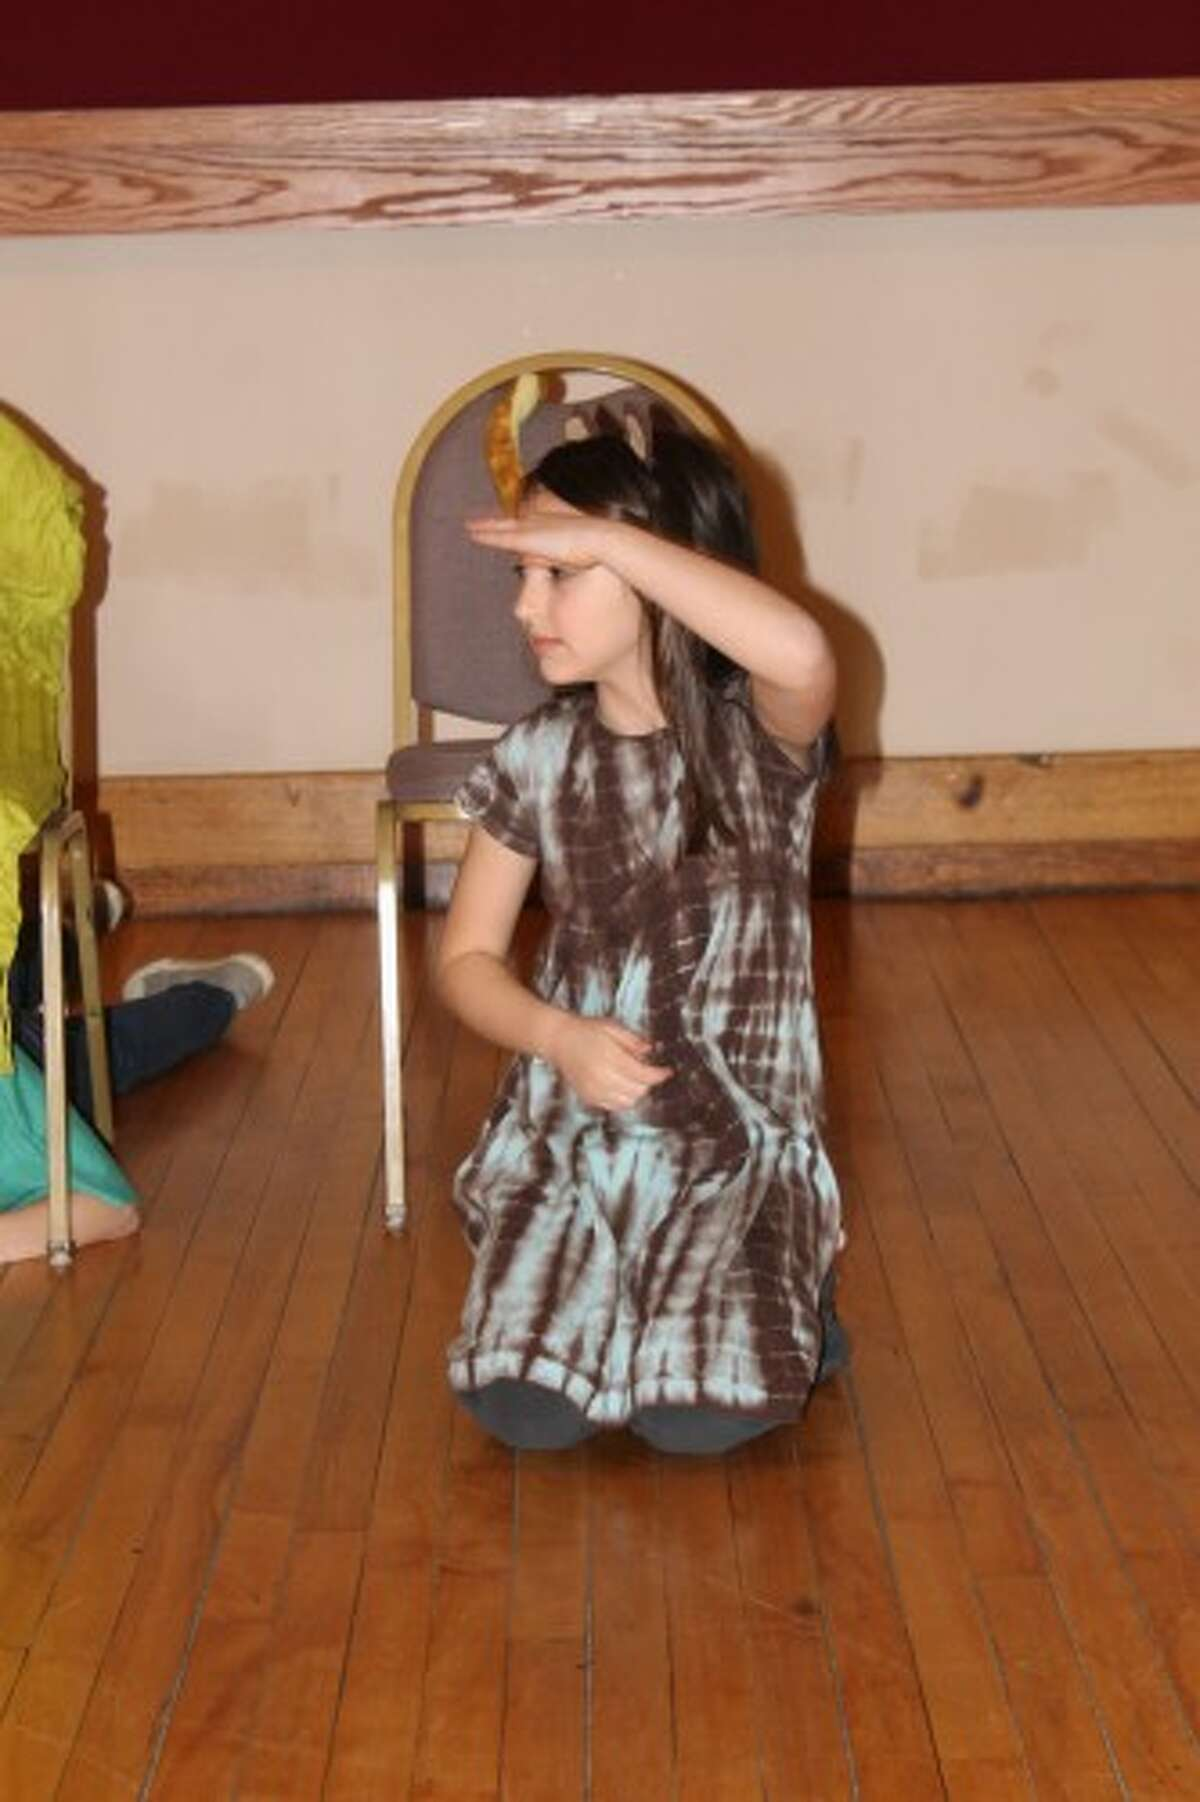 """Natalie Alden plays the chihuahua in the Youth Theater Workshop's performance of """"Why the Chihuahua Lives Indoors"""" during the Arts and Culture Alliance's IceBreaker on Saturday at the Ramsdell Theatre. (Justine McGuire/News Advocate)"""